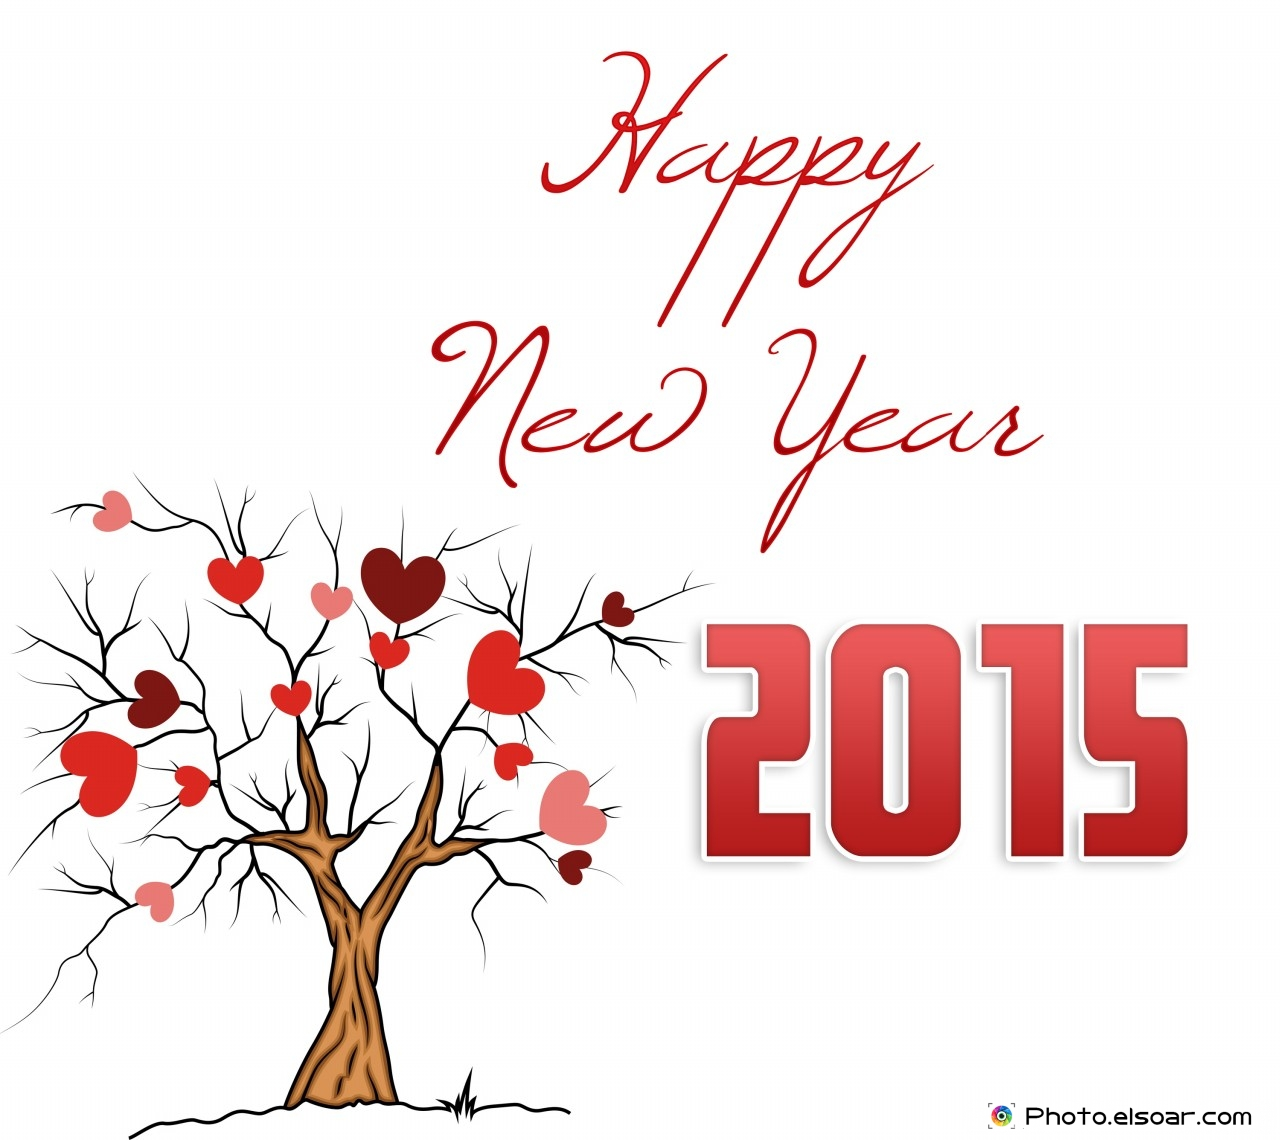 Happy New Year 2015 HD Wallpapers Elsoar 1280x1140